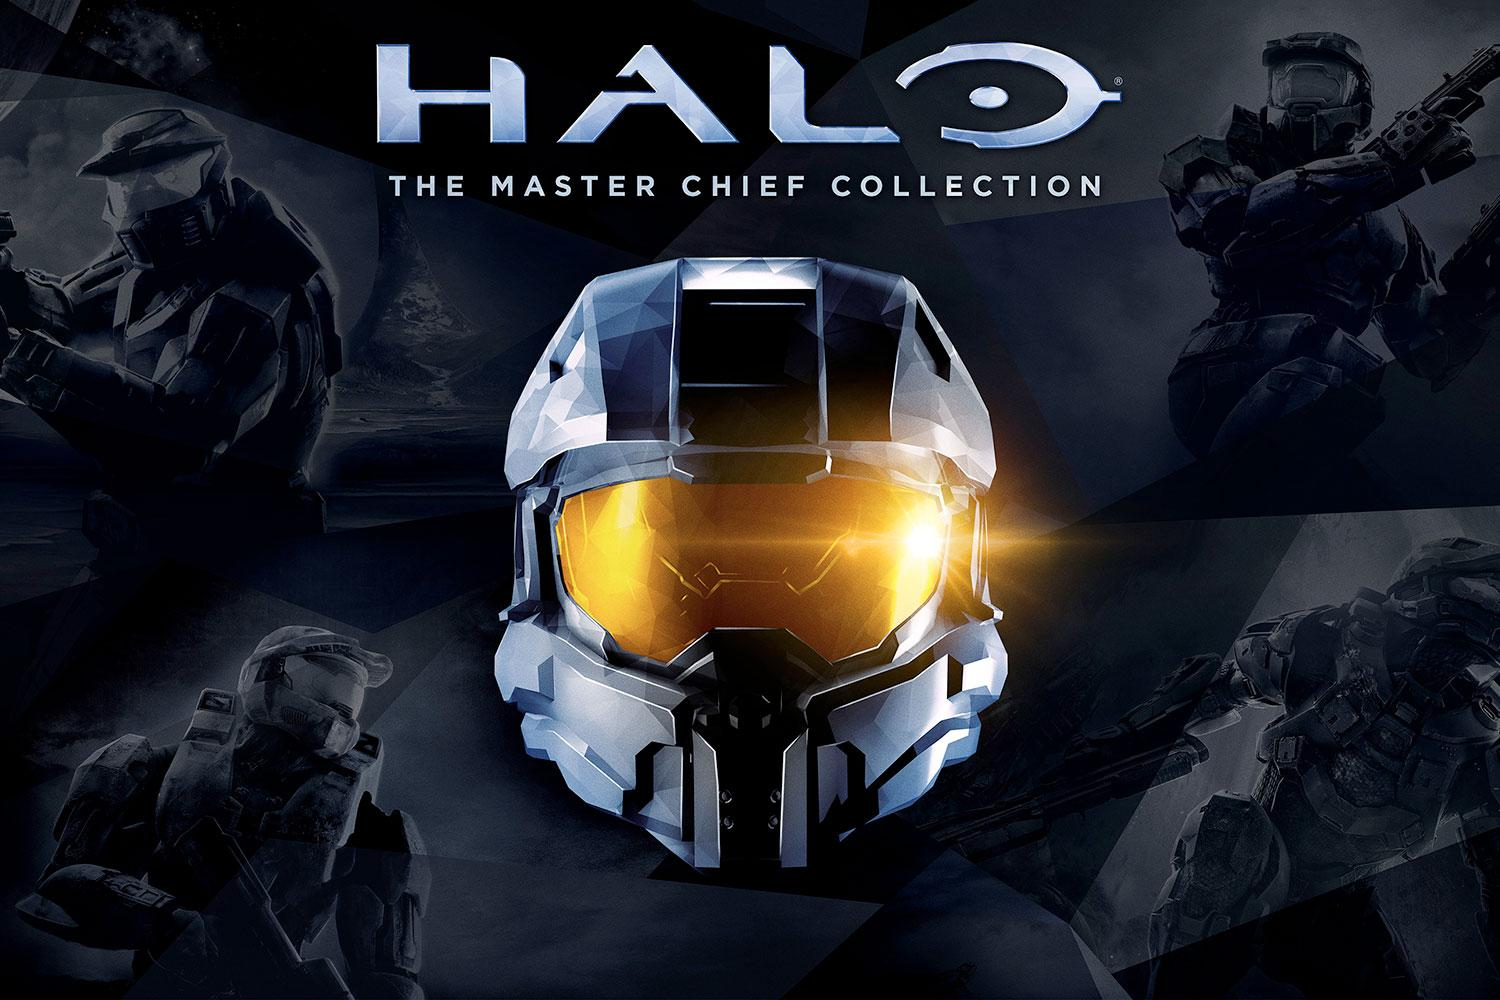 Впечатления от Halo: Master Chief Collection - Изображение 1